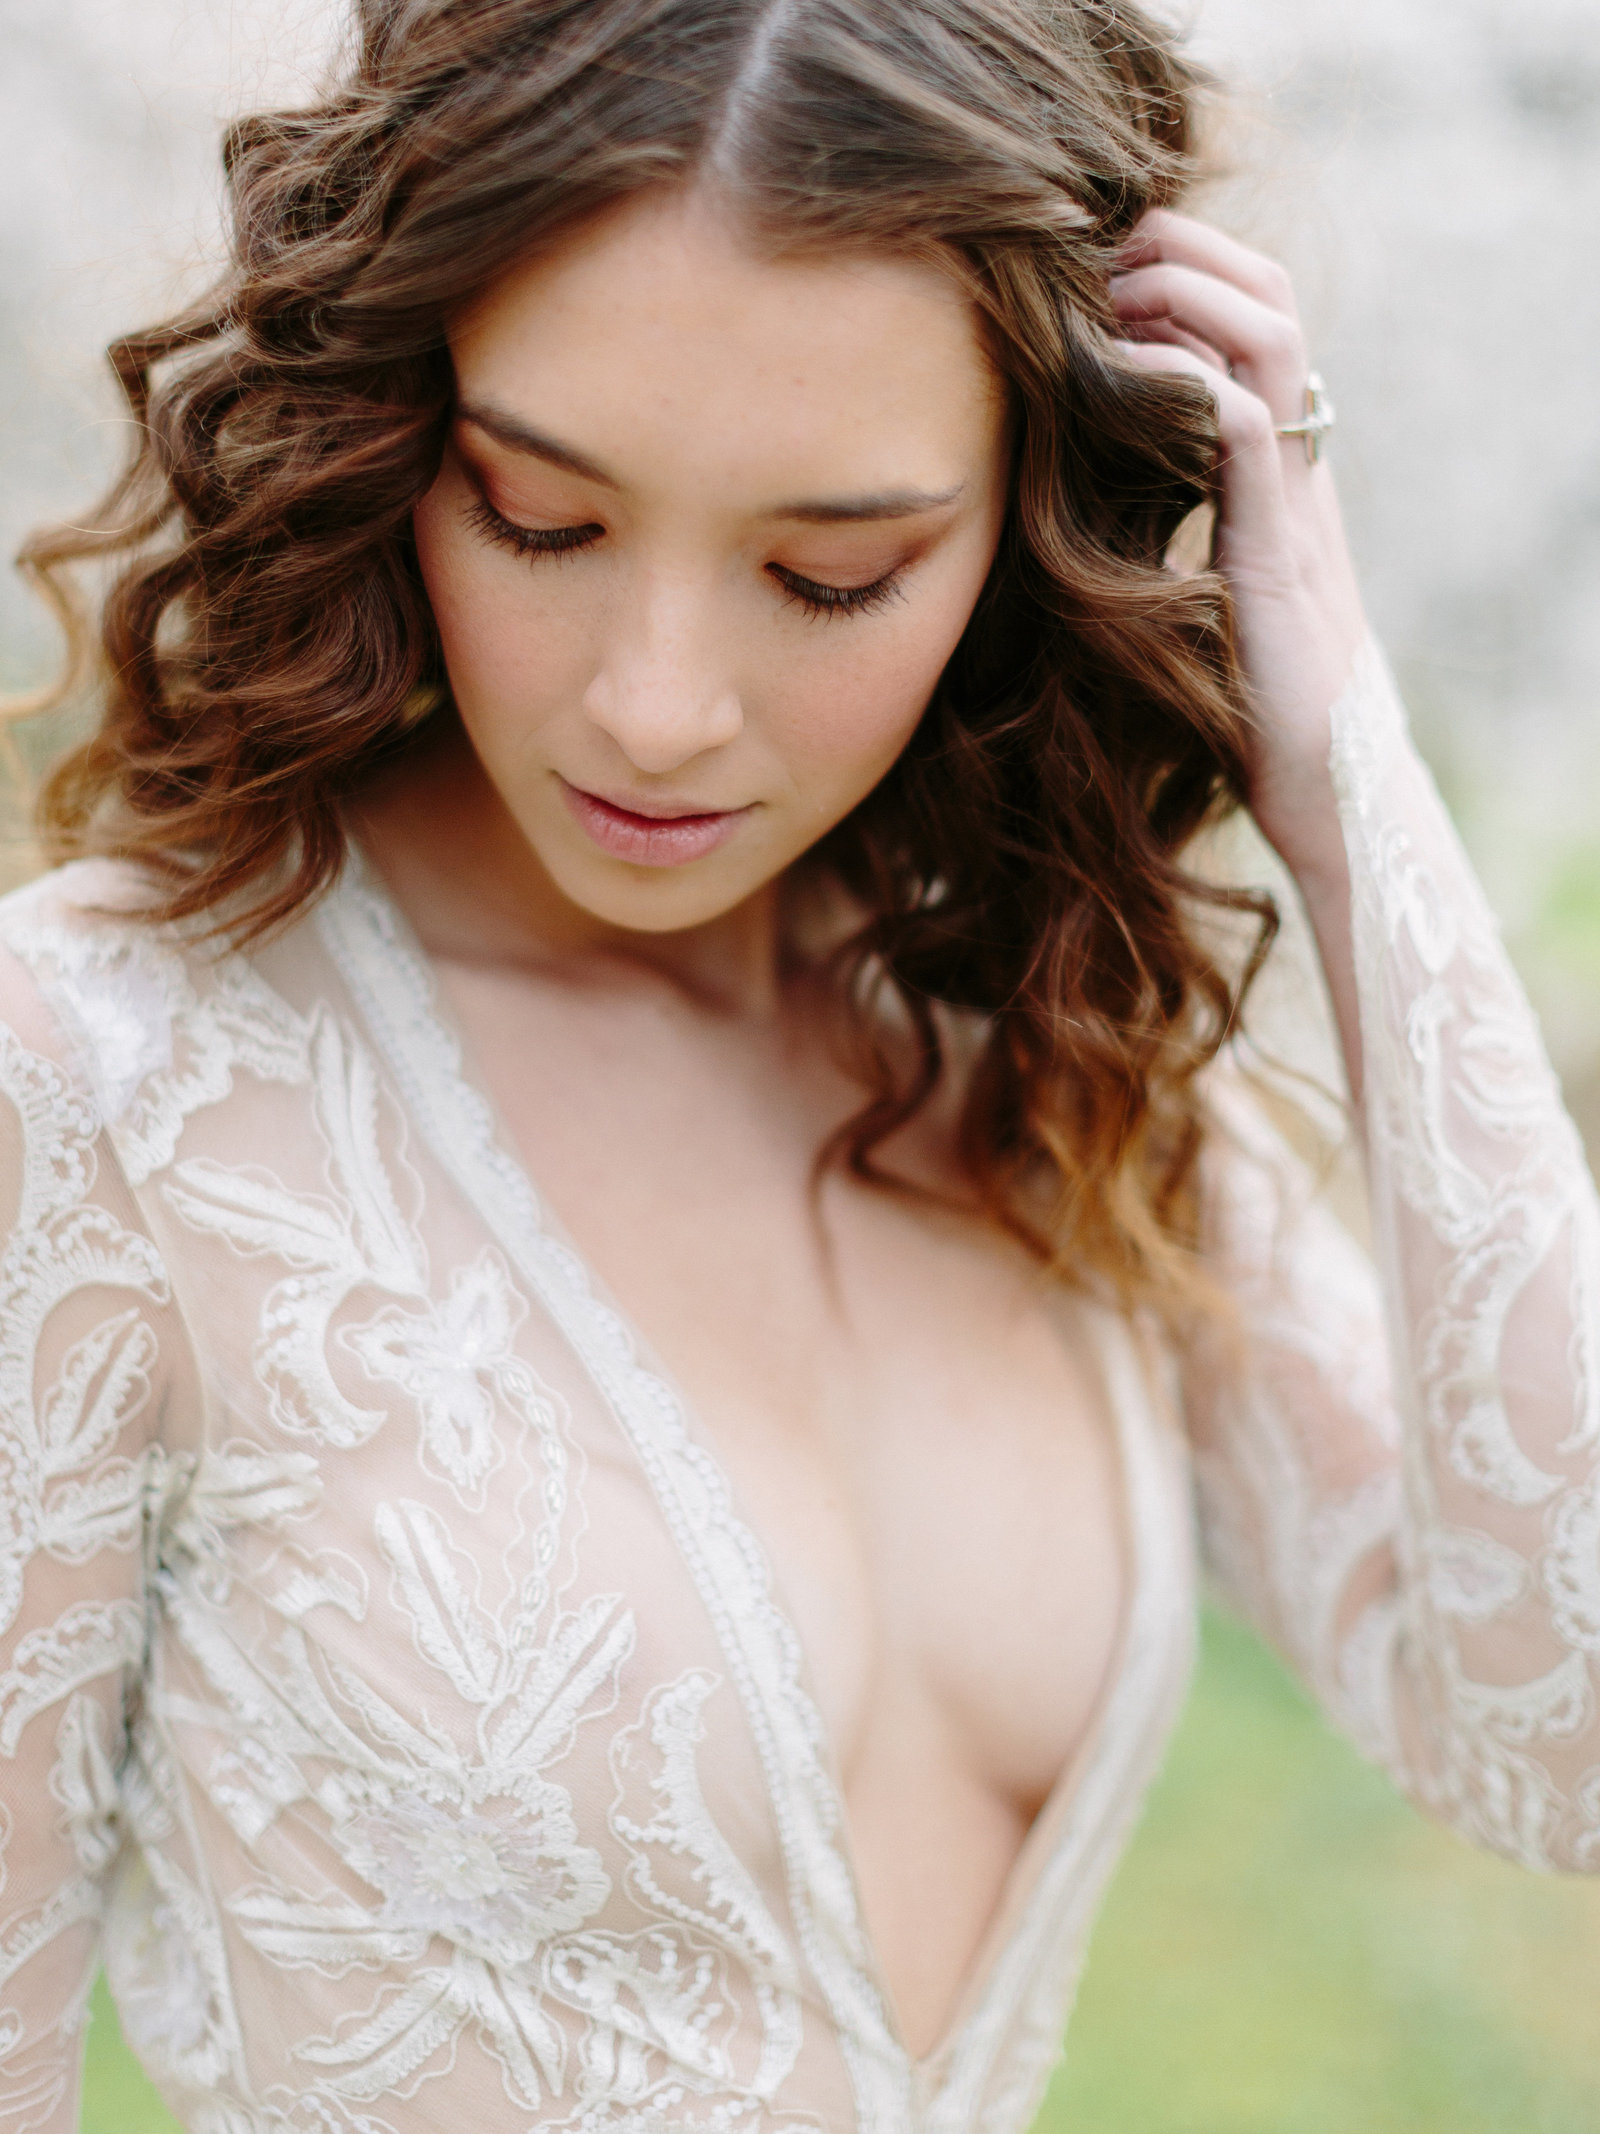 013-larissa-cleveland-editorial-fashion-wedding_photographer-san-francisco-carmel-napa-california-LCphoto-orchard-finals-039